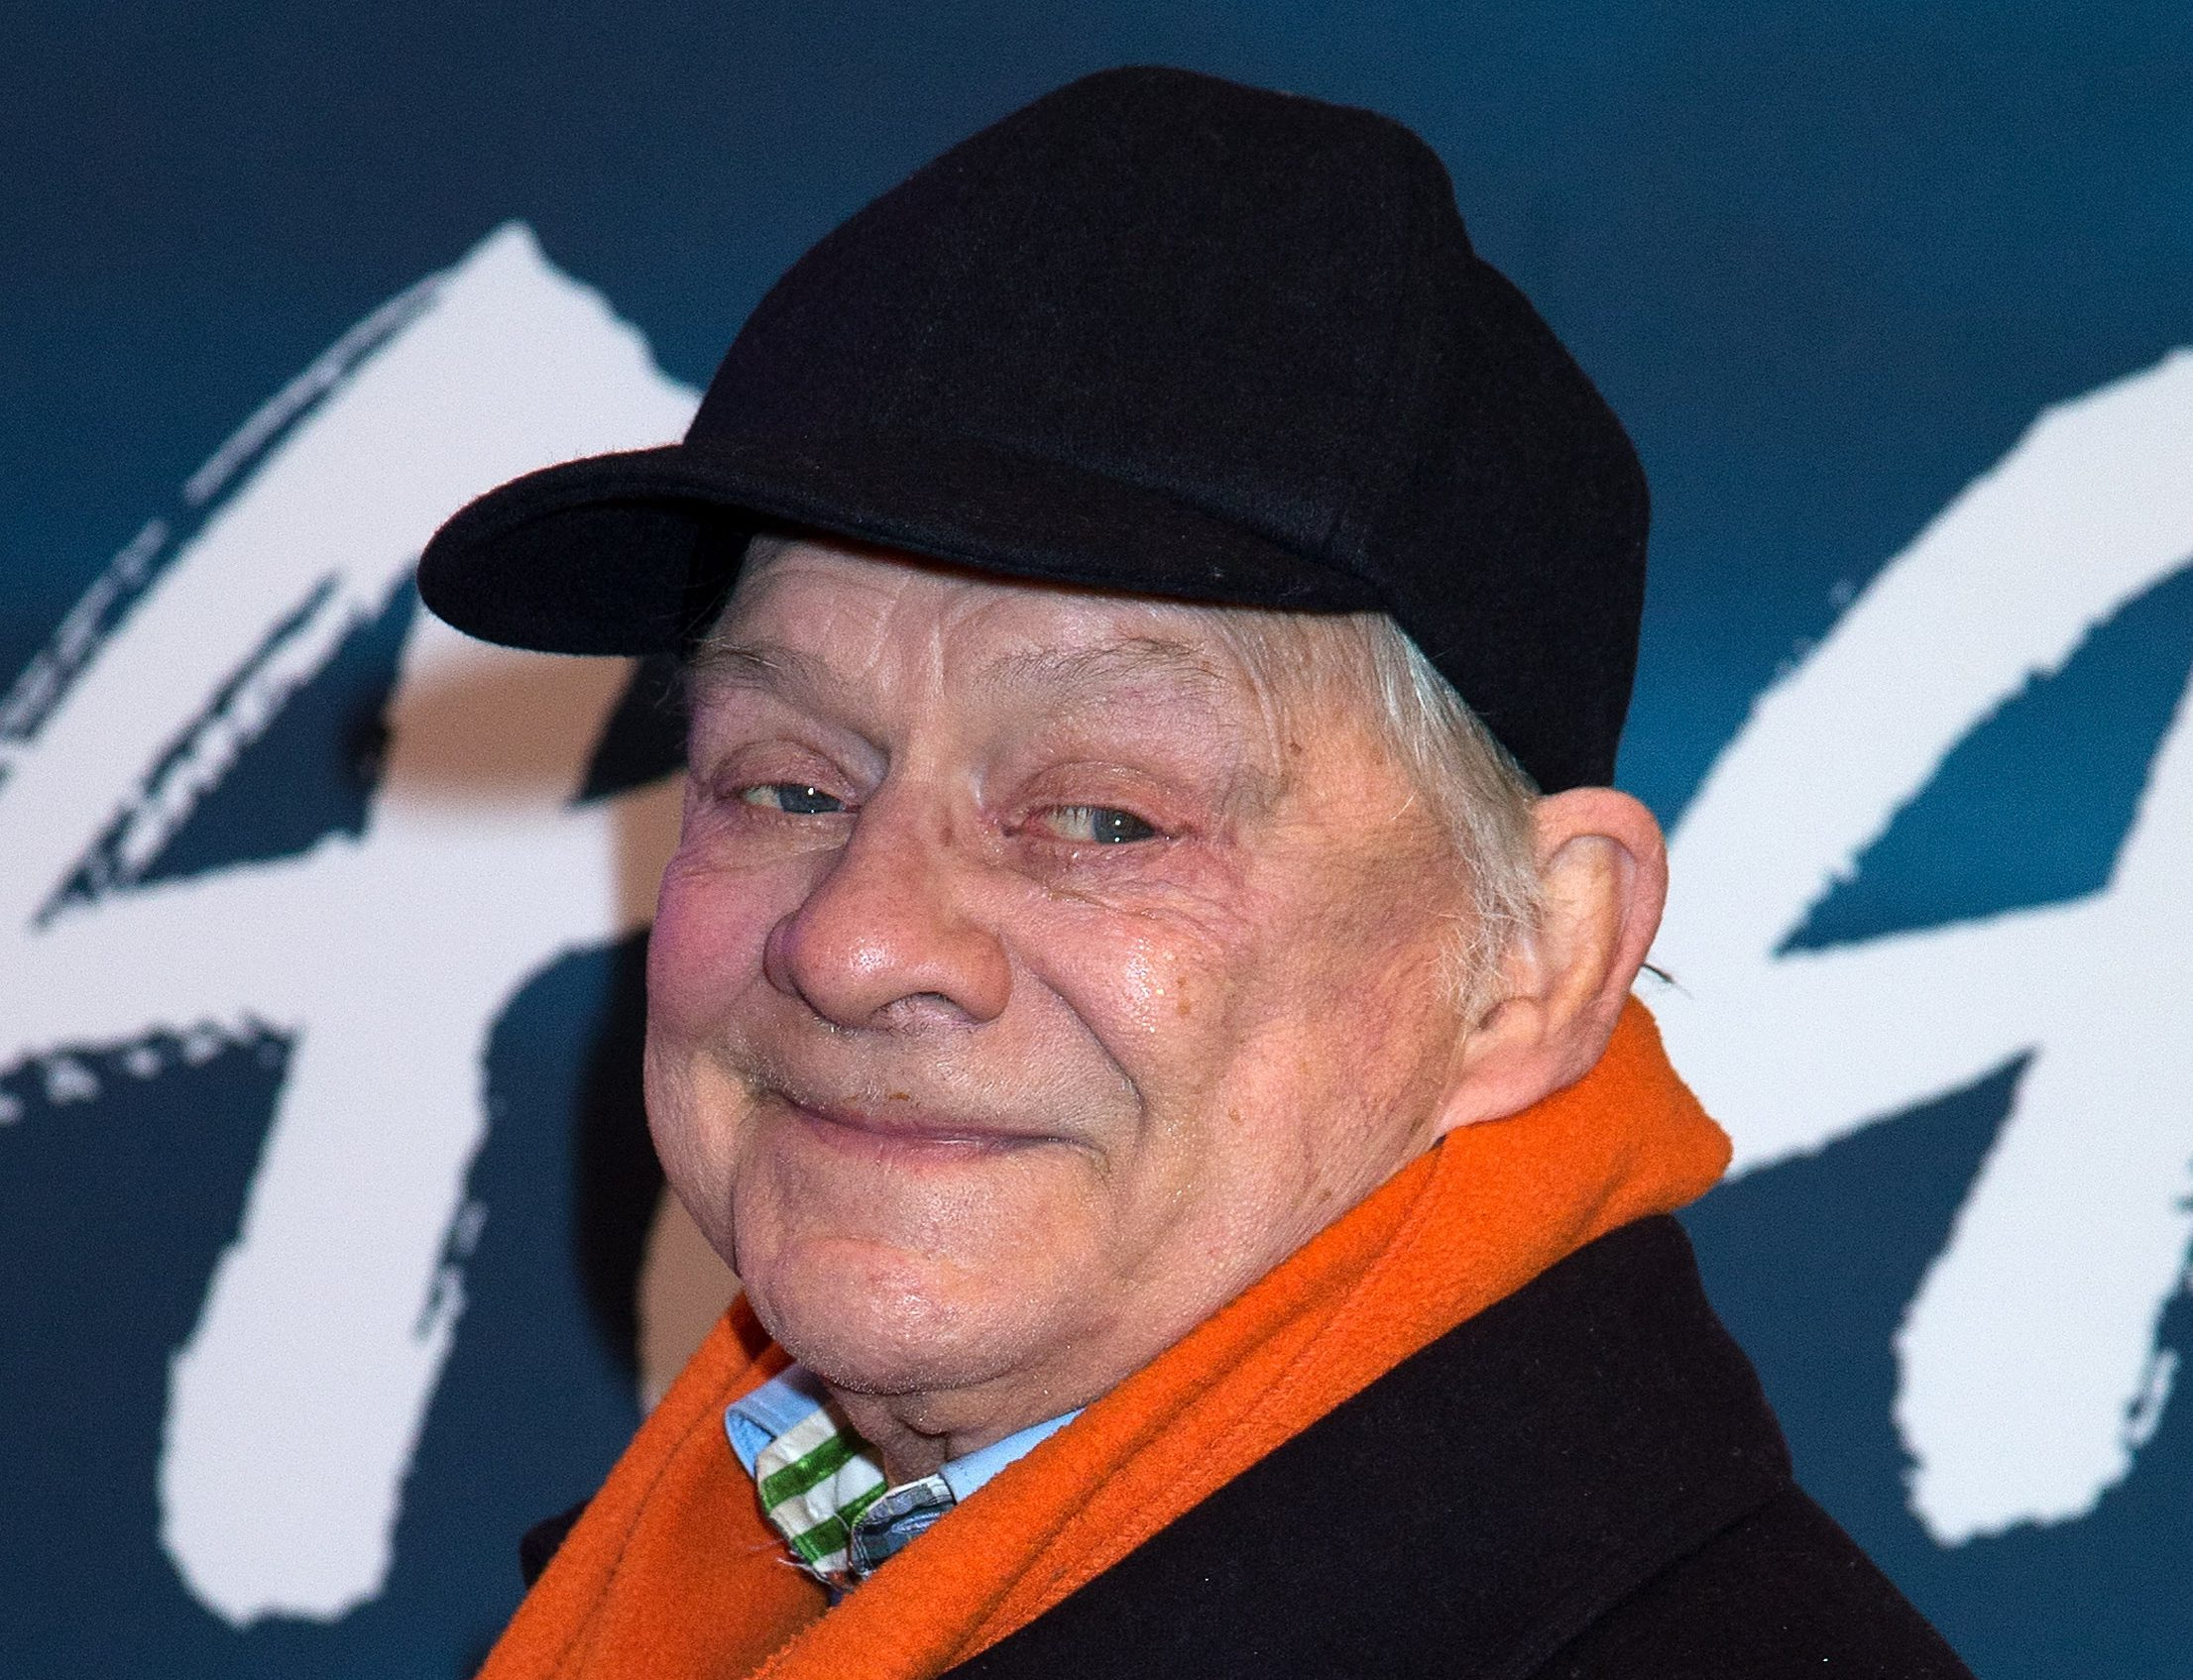 LONDON, ENGLAND - JANUARY 12: David Jason attends the blue carpet of the Cirque du Soleil: Amaluna press night on January 12, 2017 in London, United Kingdom. (Photo by Dave J Hogan/Getty Images)